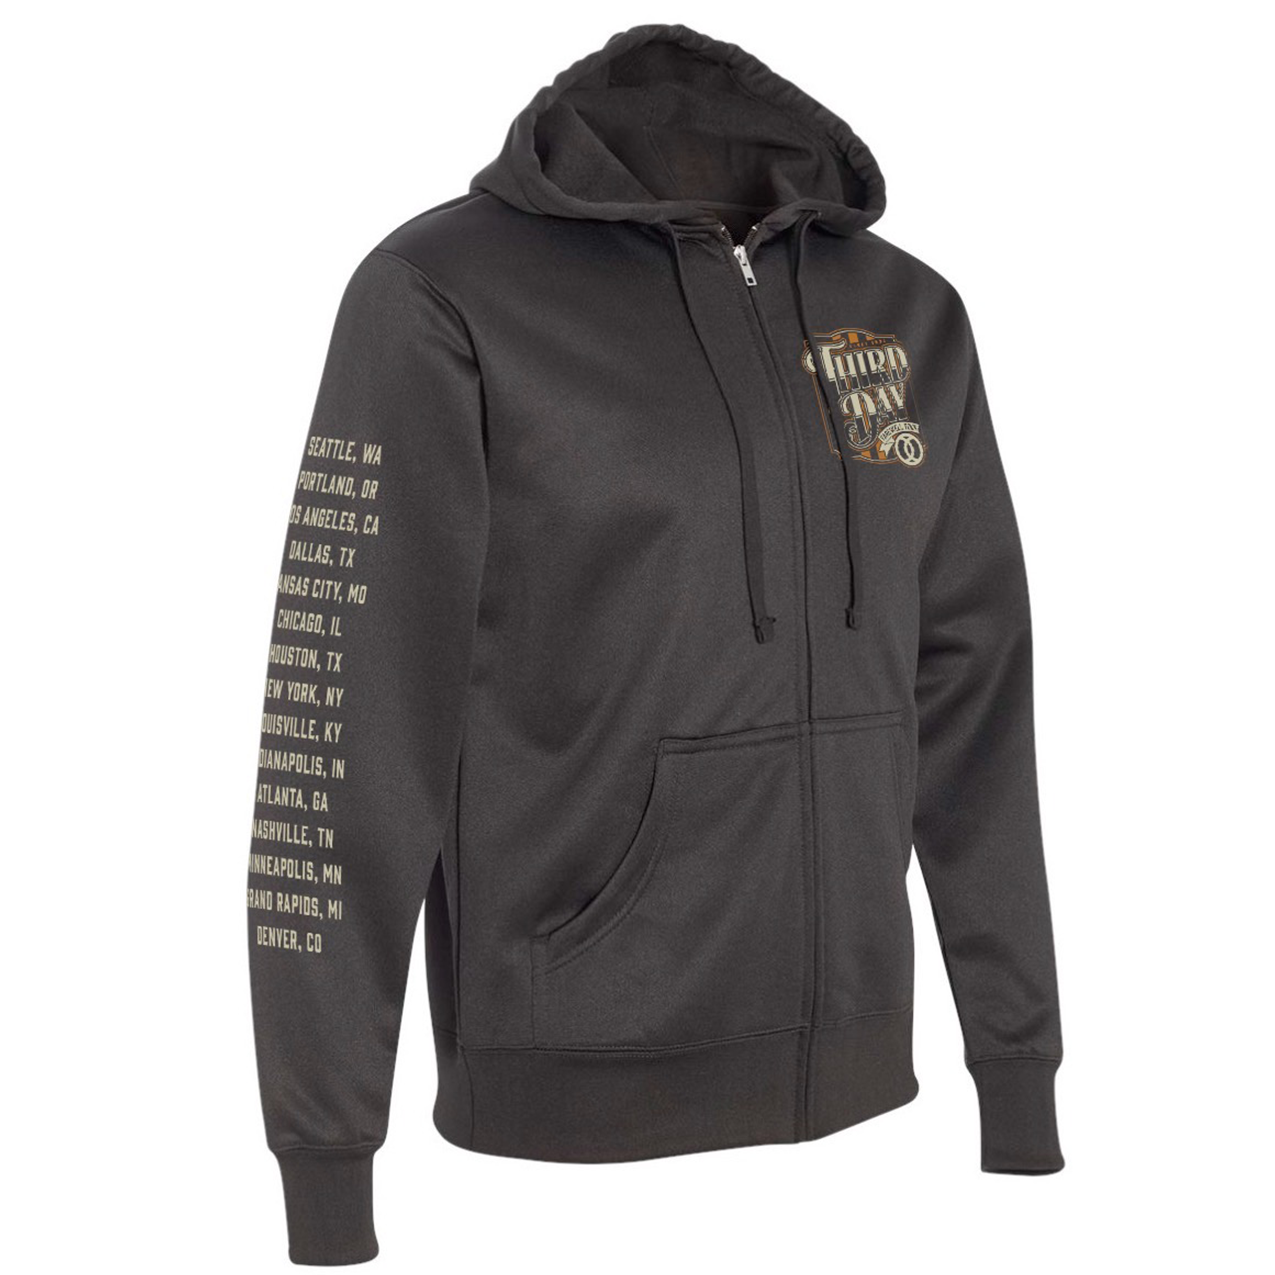 Graphic Farewell Tour Hoodie - Black